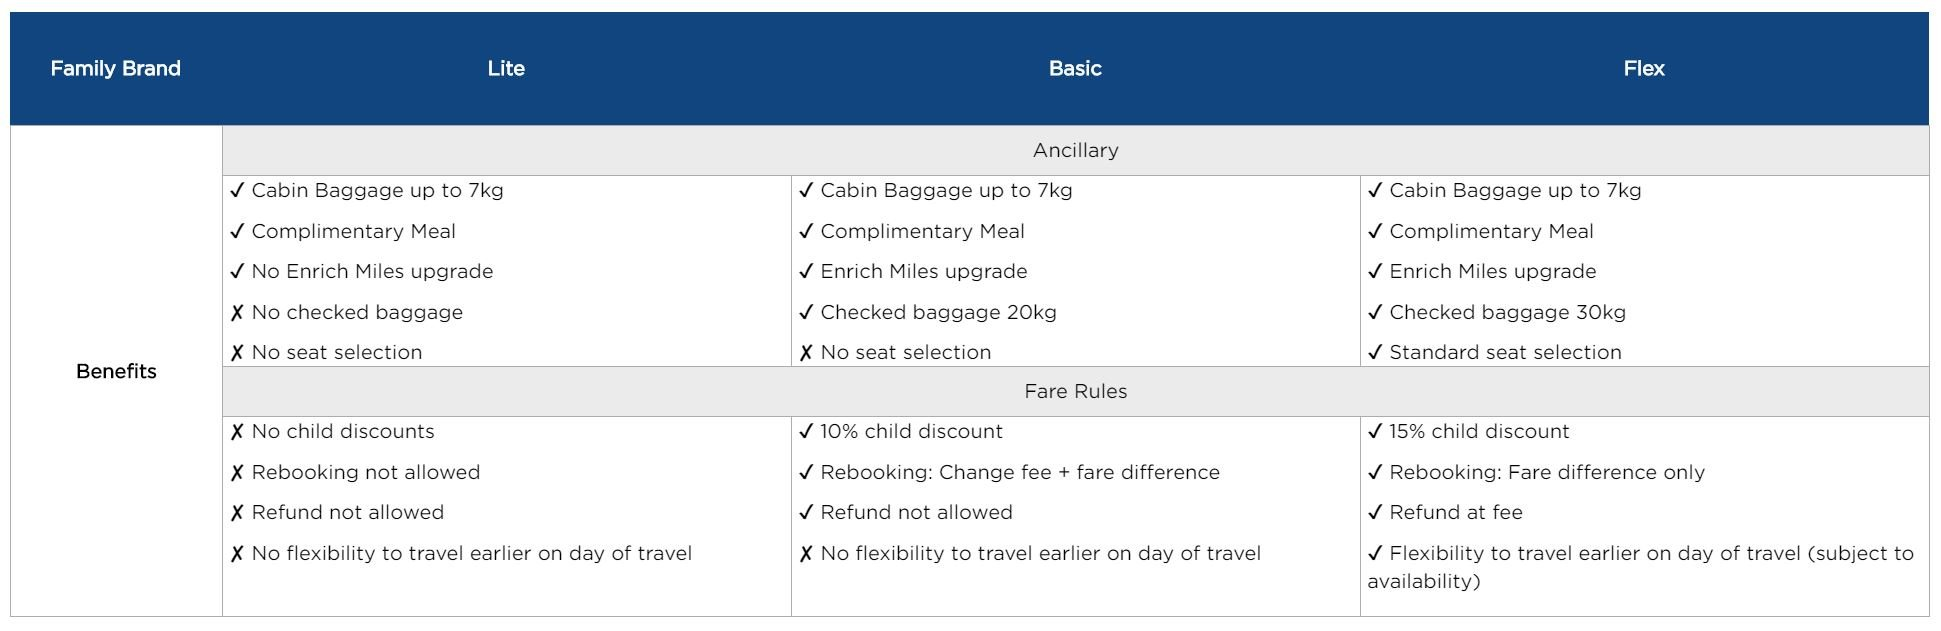 Malaysia Airlines New Economy Fares 2020